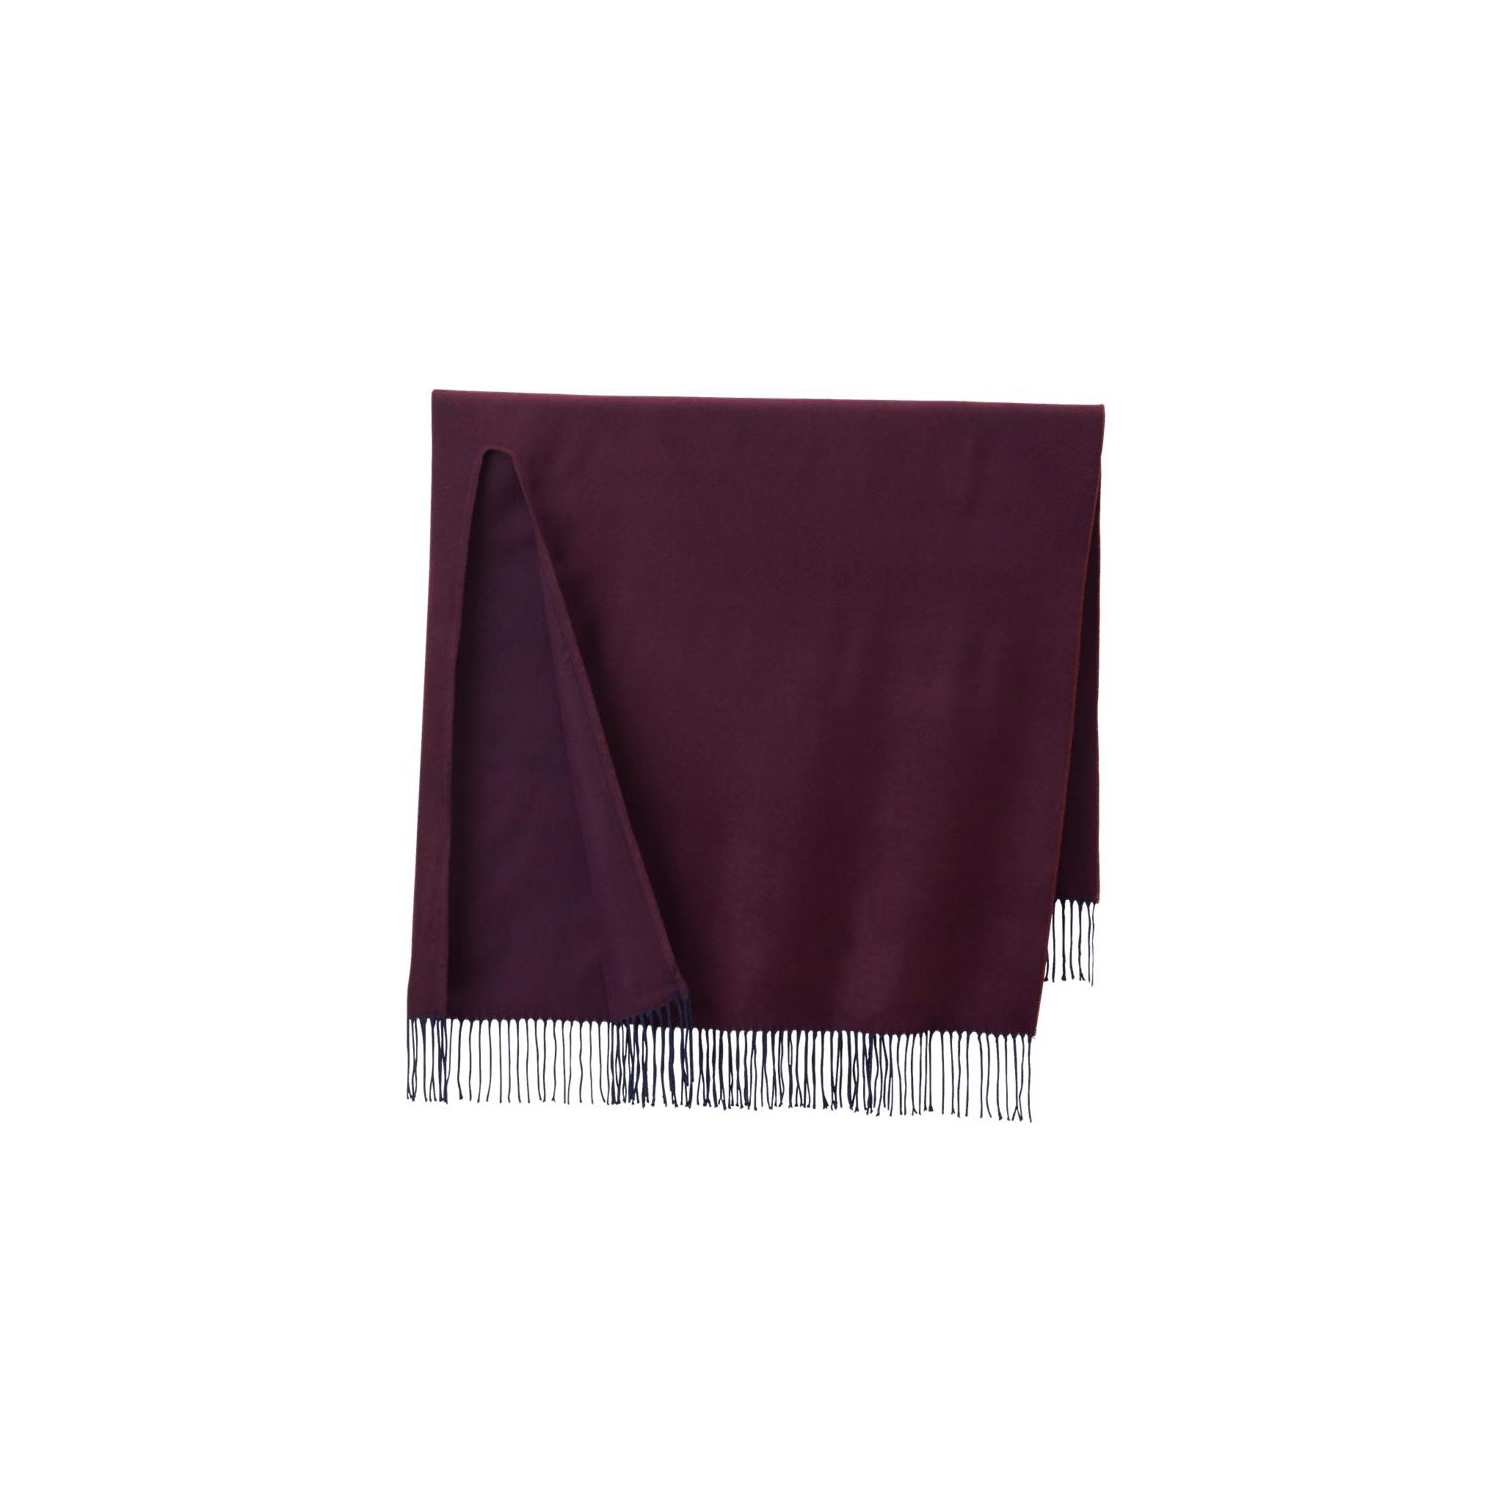 Uniqlo 2Way Stole Wine